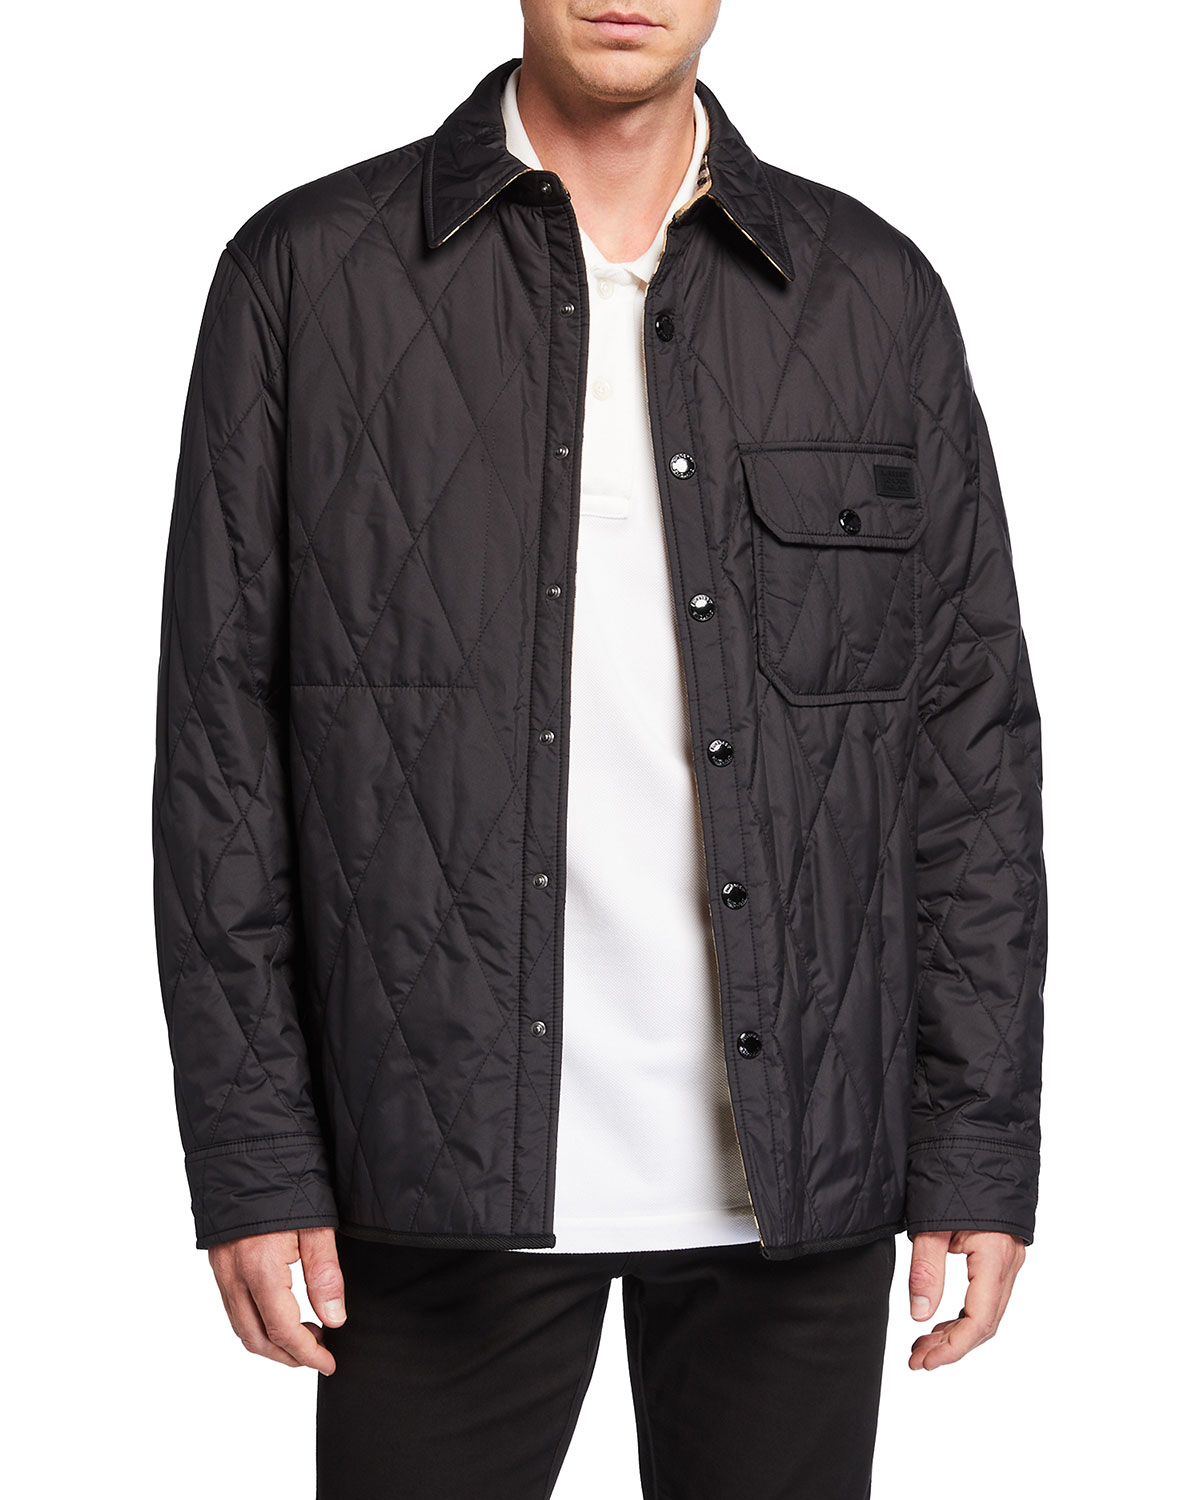 Burberry MEN'S CRESSWELL REVERSIBLE DIAMOND QUILTED SHIRT JACKET